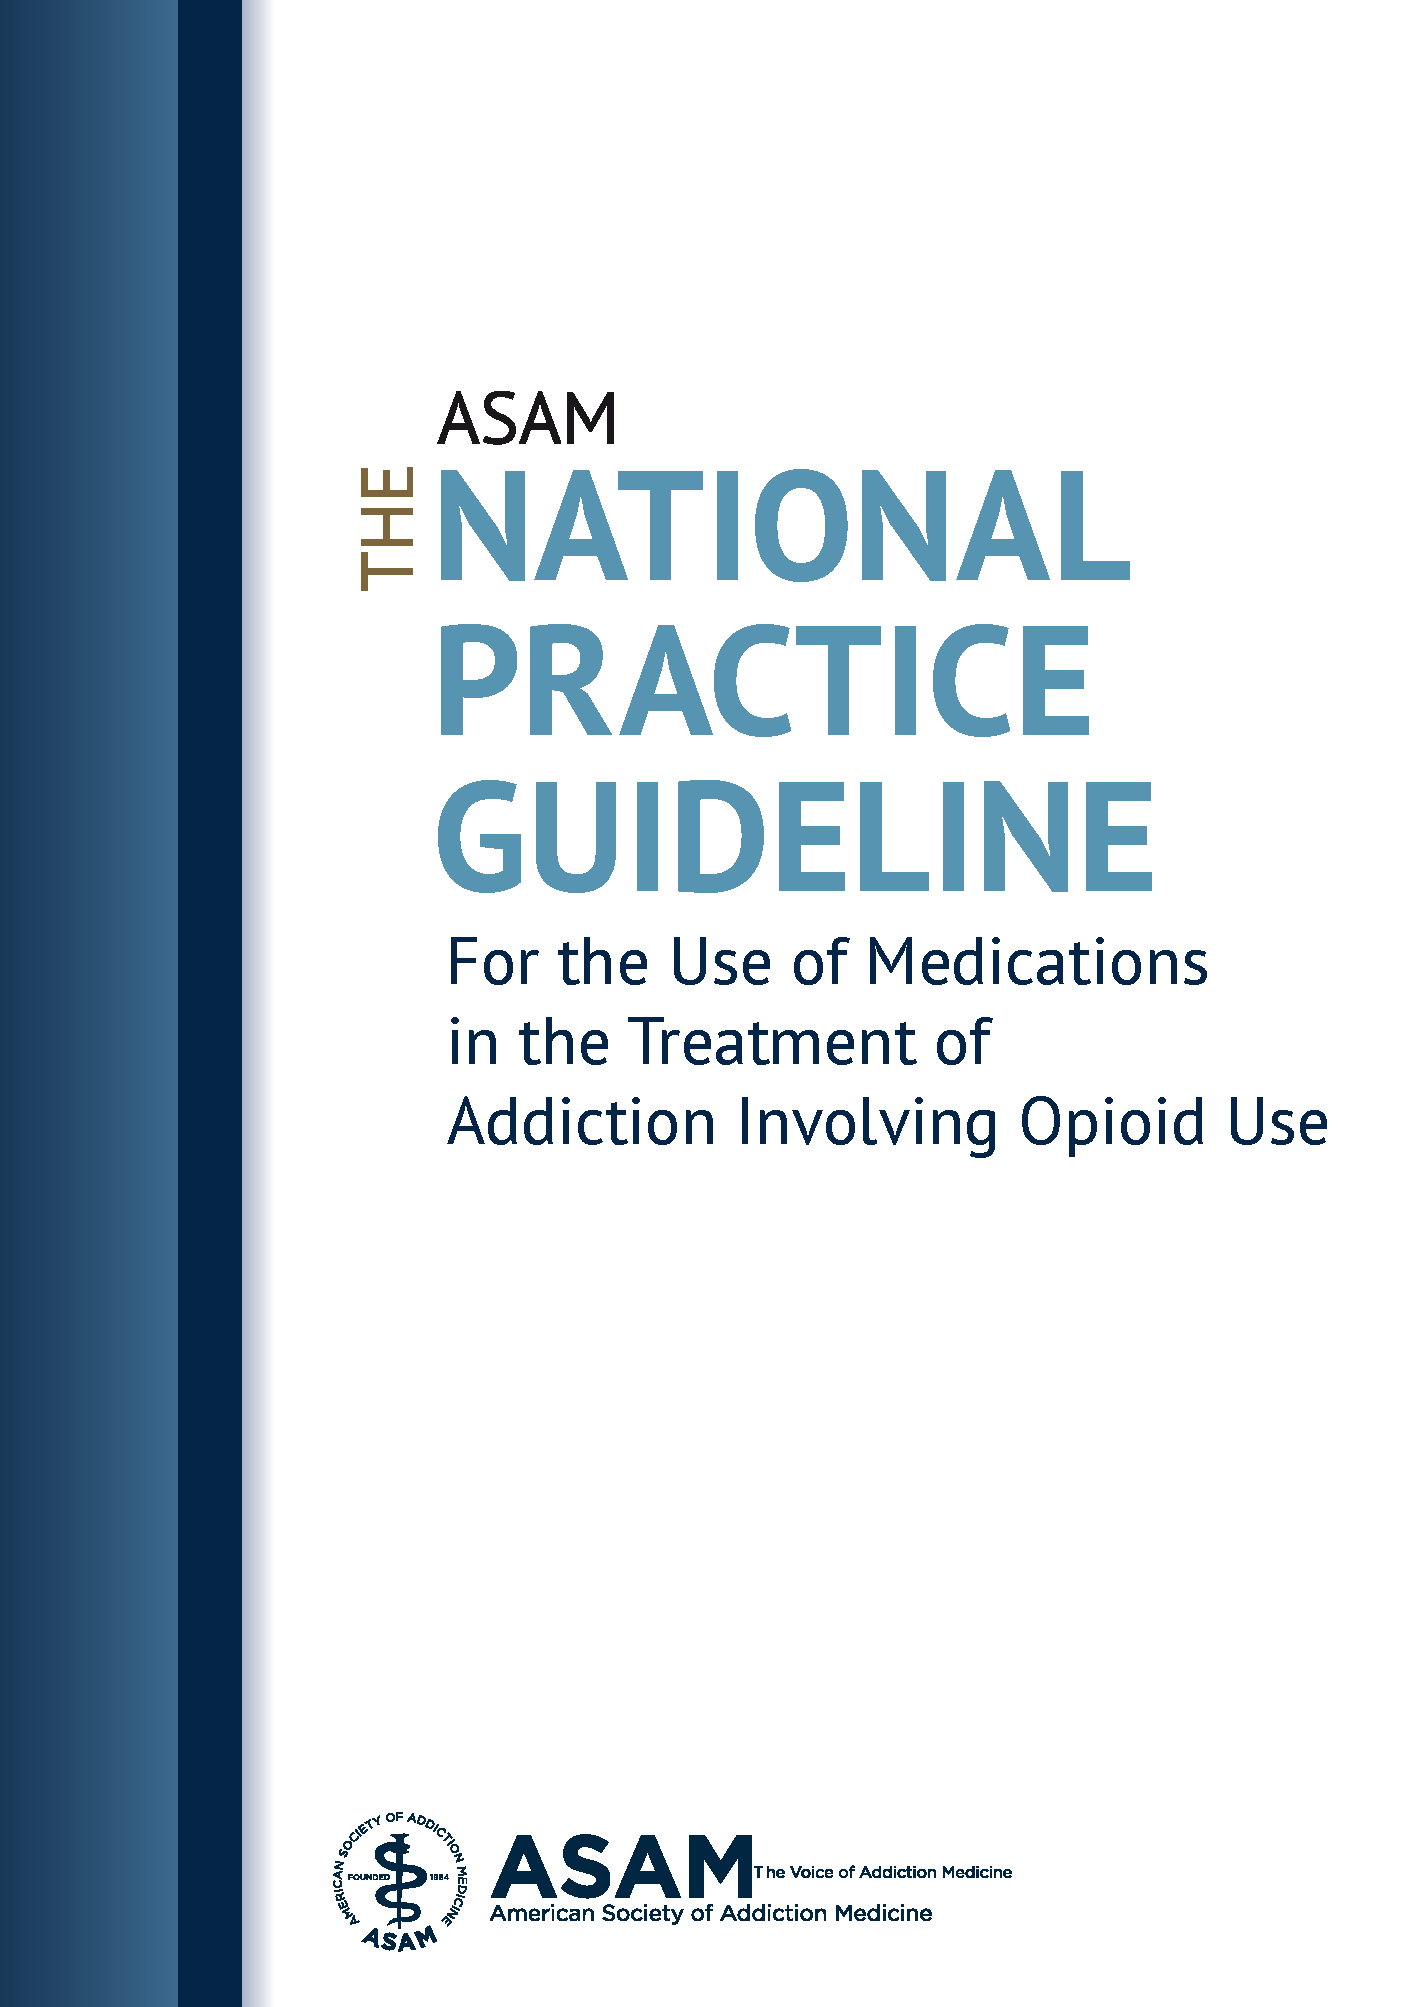 Guidelines cover: click to download full guideline